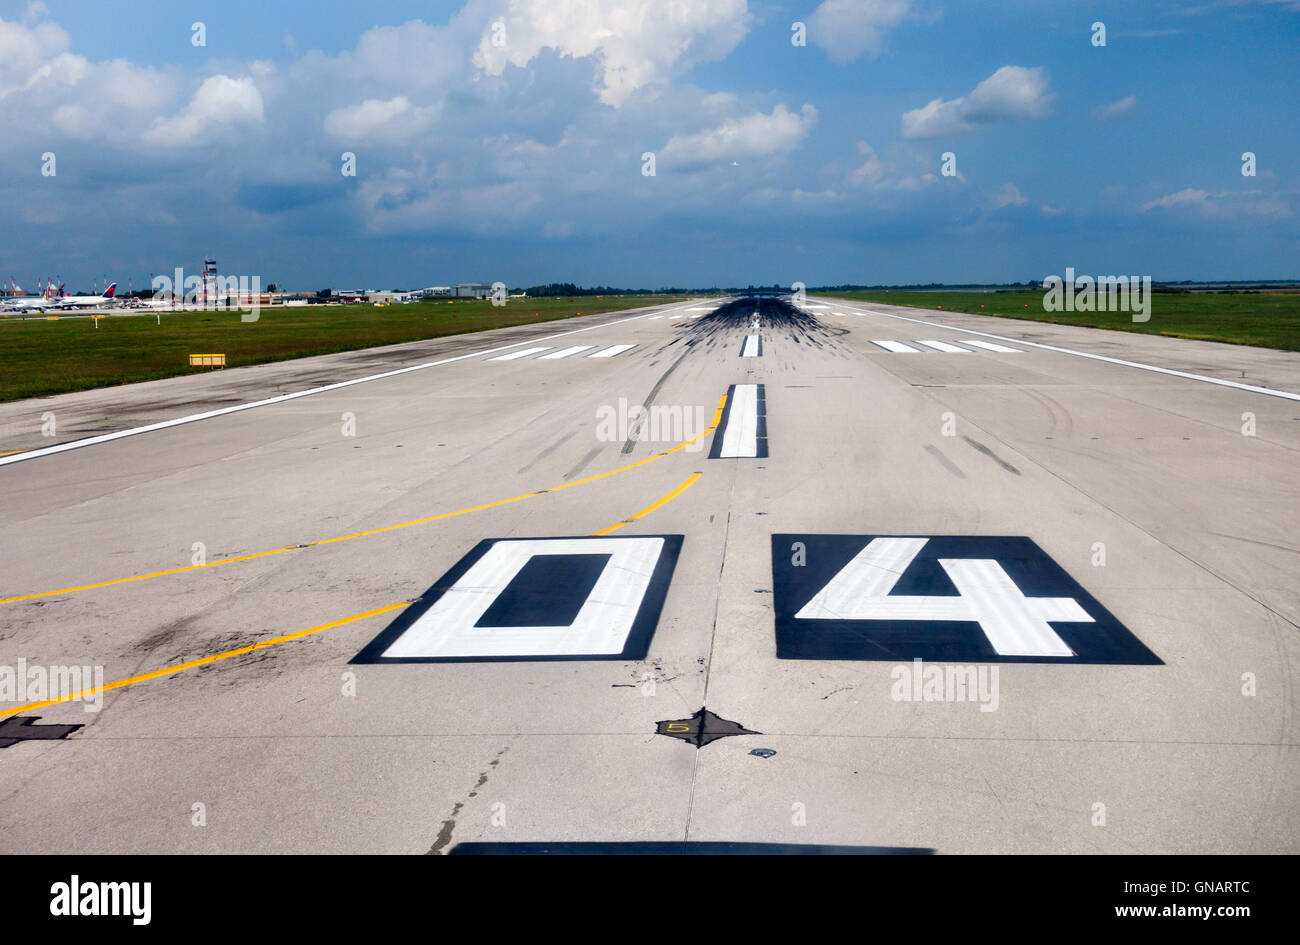 View along a runway from an aircraft about to take off (Venice Marco Polo Airport, Italy) - Stock Image